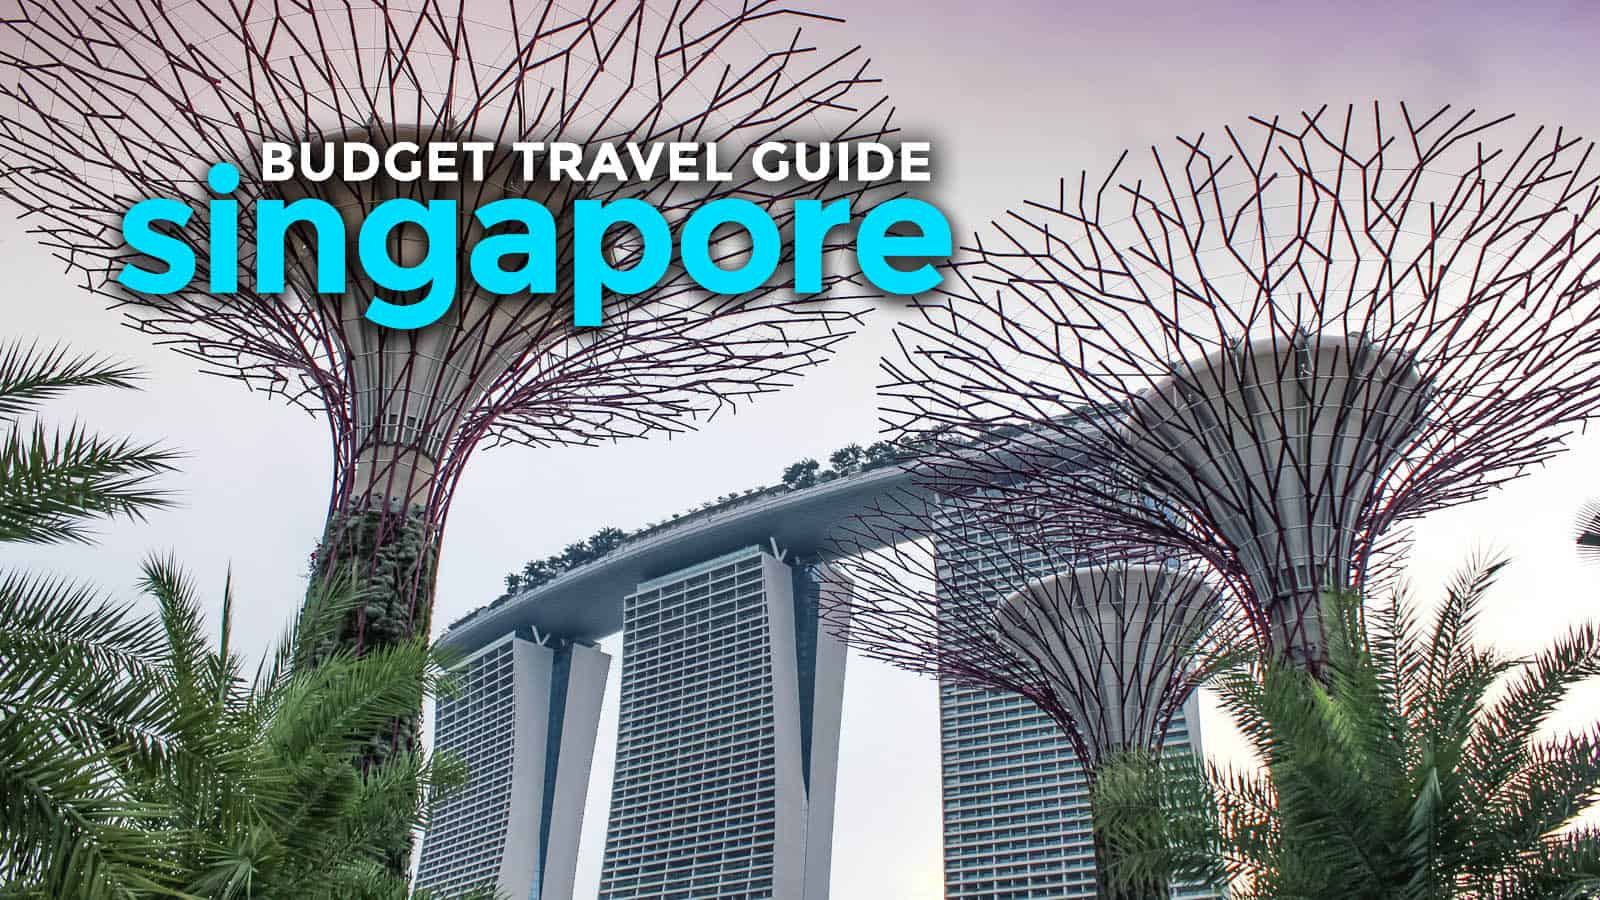 Singapore Budget Travel Guide Updated 2014 The Poor Traveler River Safari Anak On A Itinerary